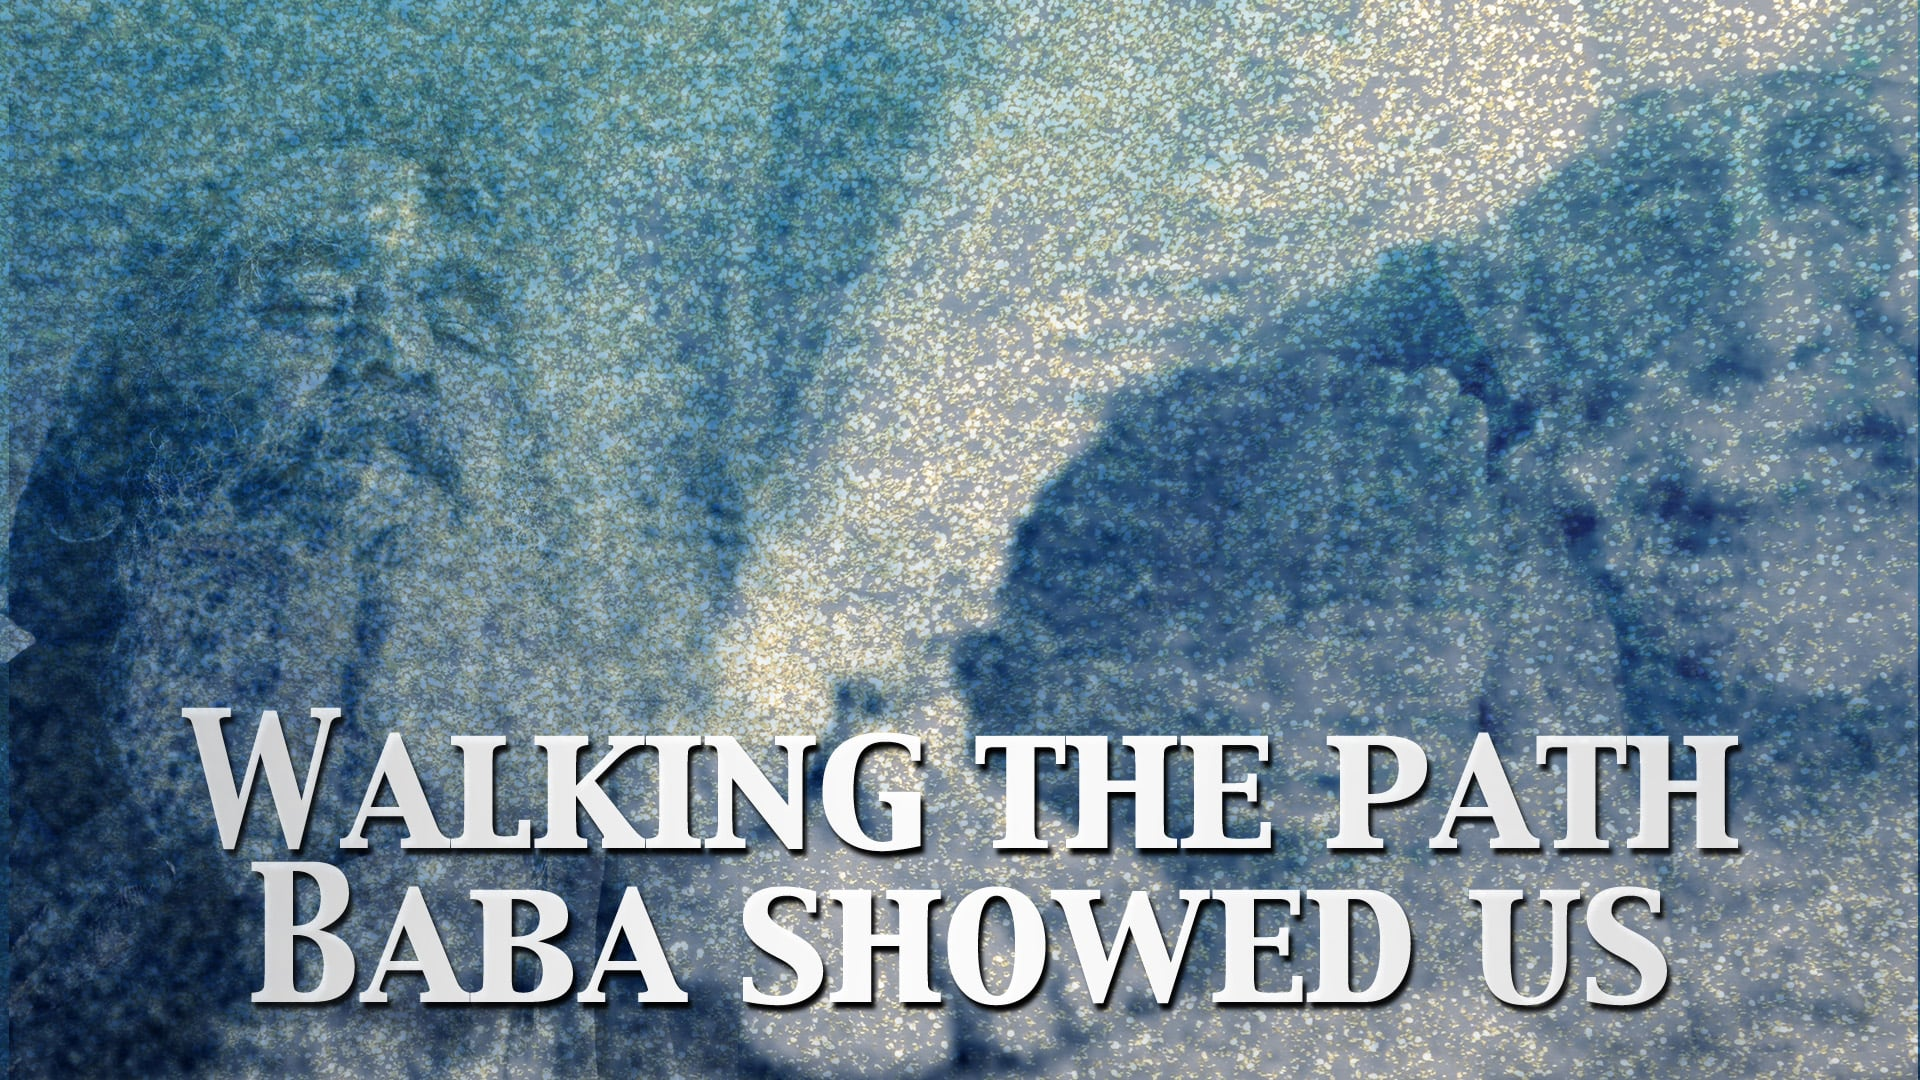 Walking the Path that Baba Showed Us